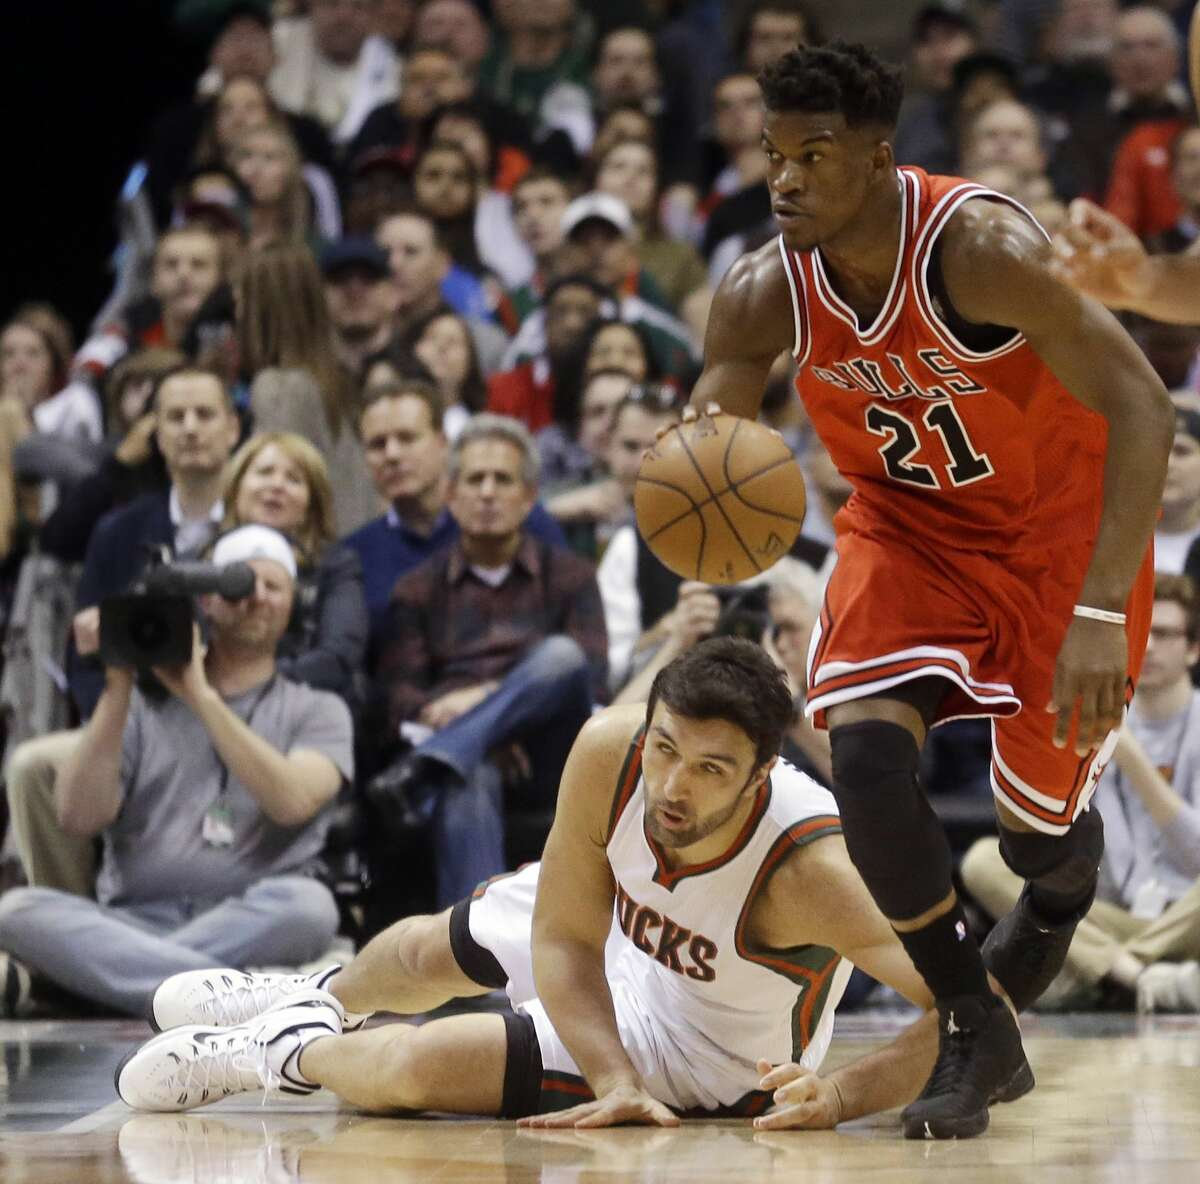 The Chicago Bulls' Jimmy Butler (21) was selected as the NBA's Most Improved Player.